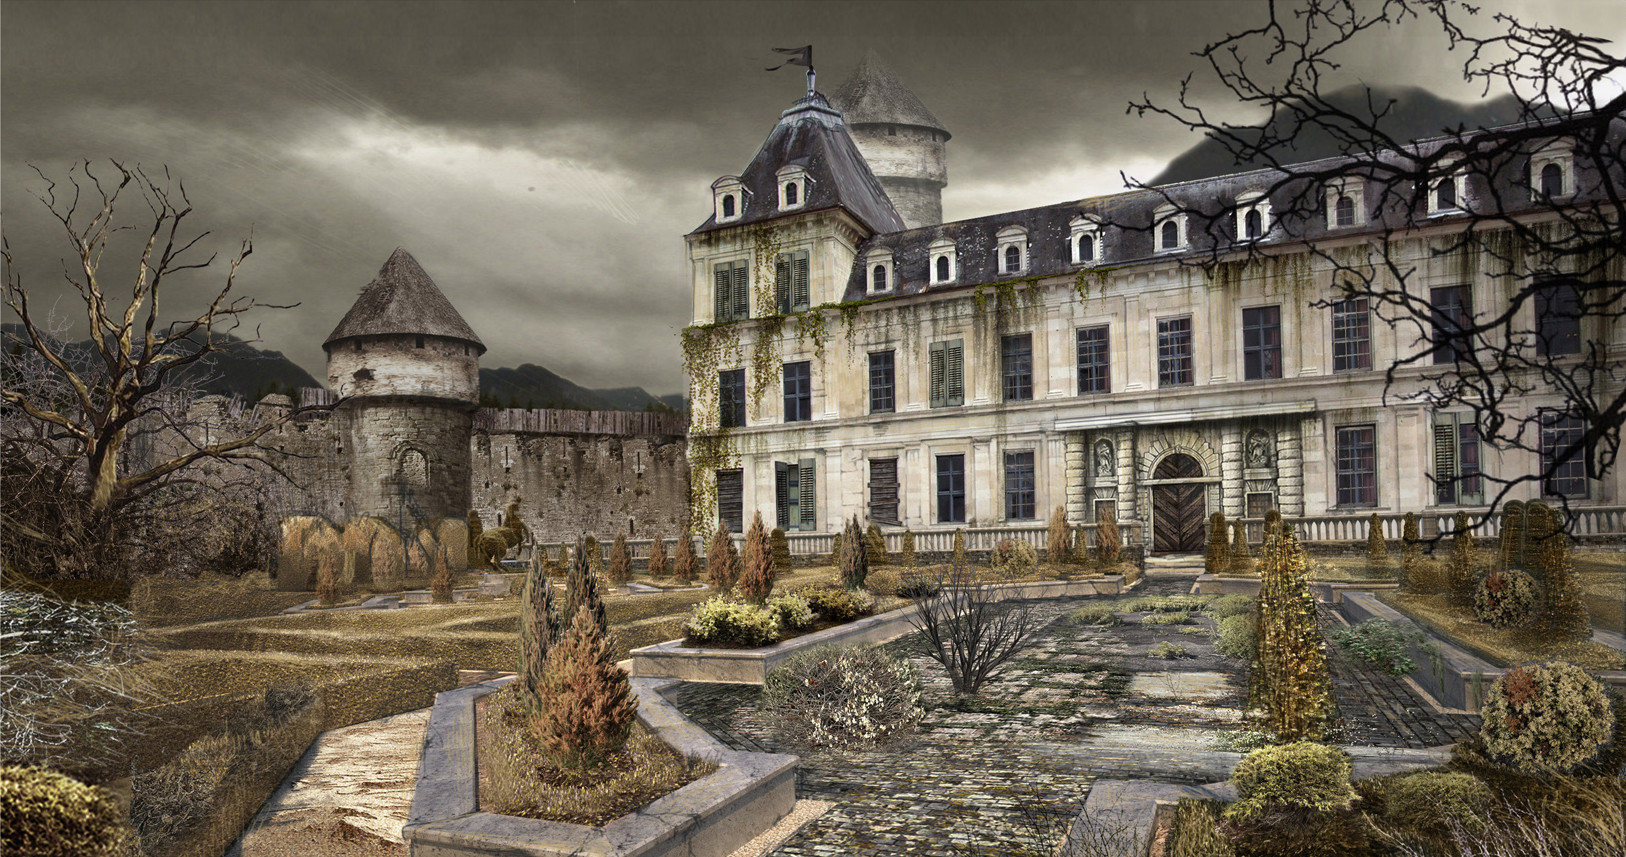 Decayed Rumple's Castle - ABC's Once Upon a Time Season 3